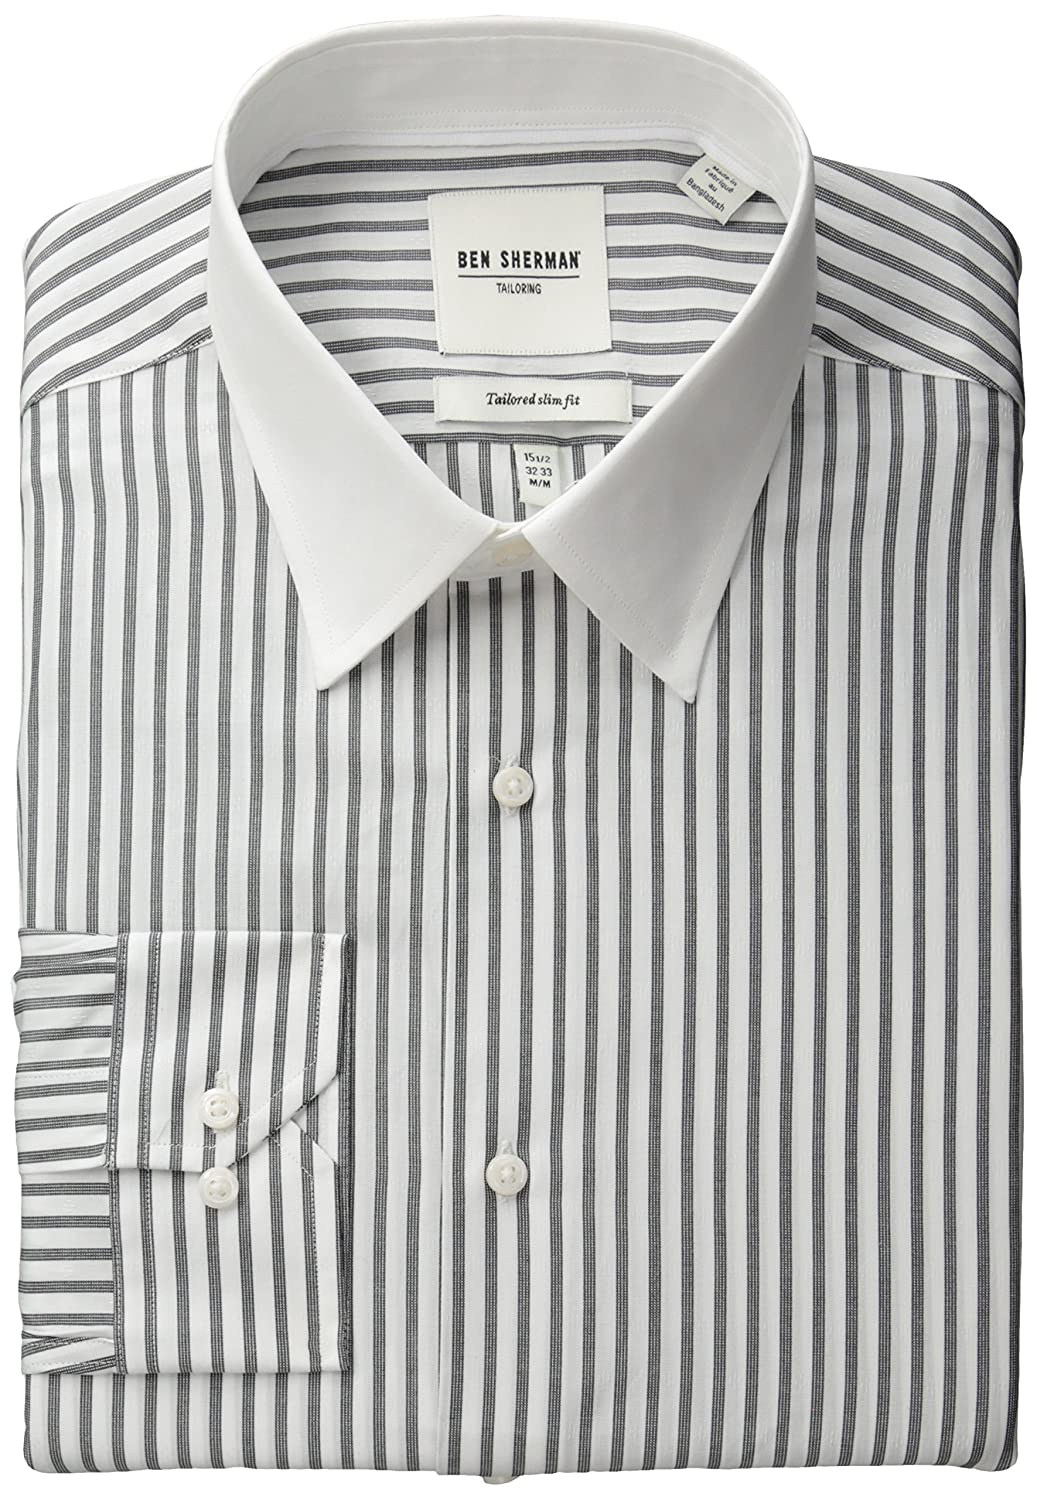 1920s Men's Dress Shirts Ben Sherman Mens Slim Fit Dobby Stripe Bankers Collar Dress Shirt $29.95 AT vintagedancer.com